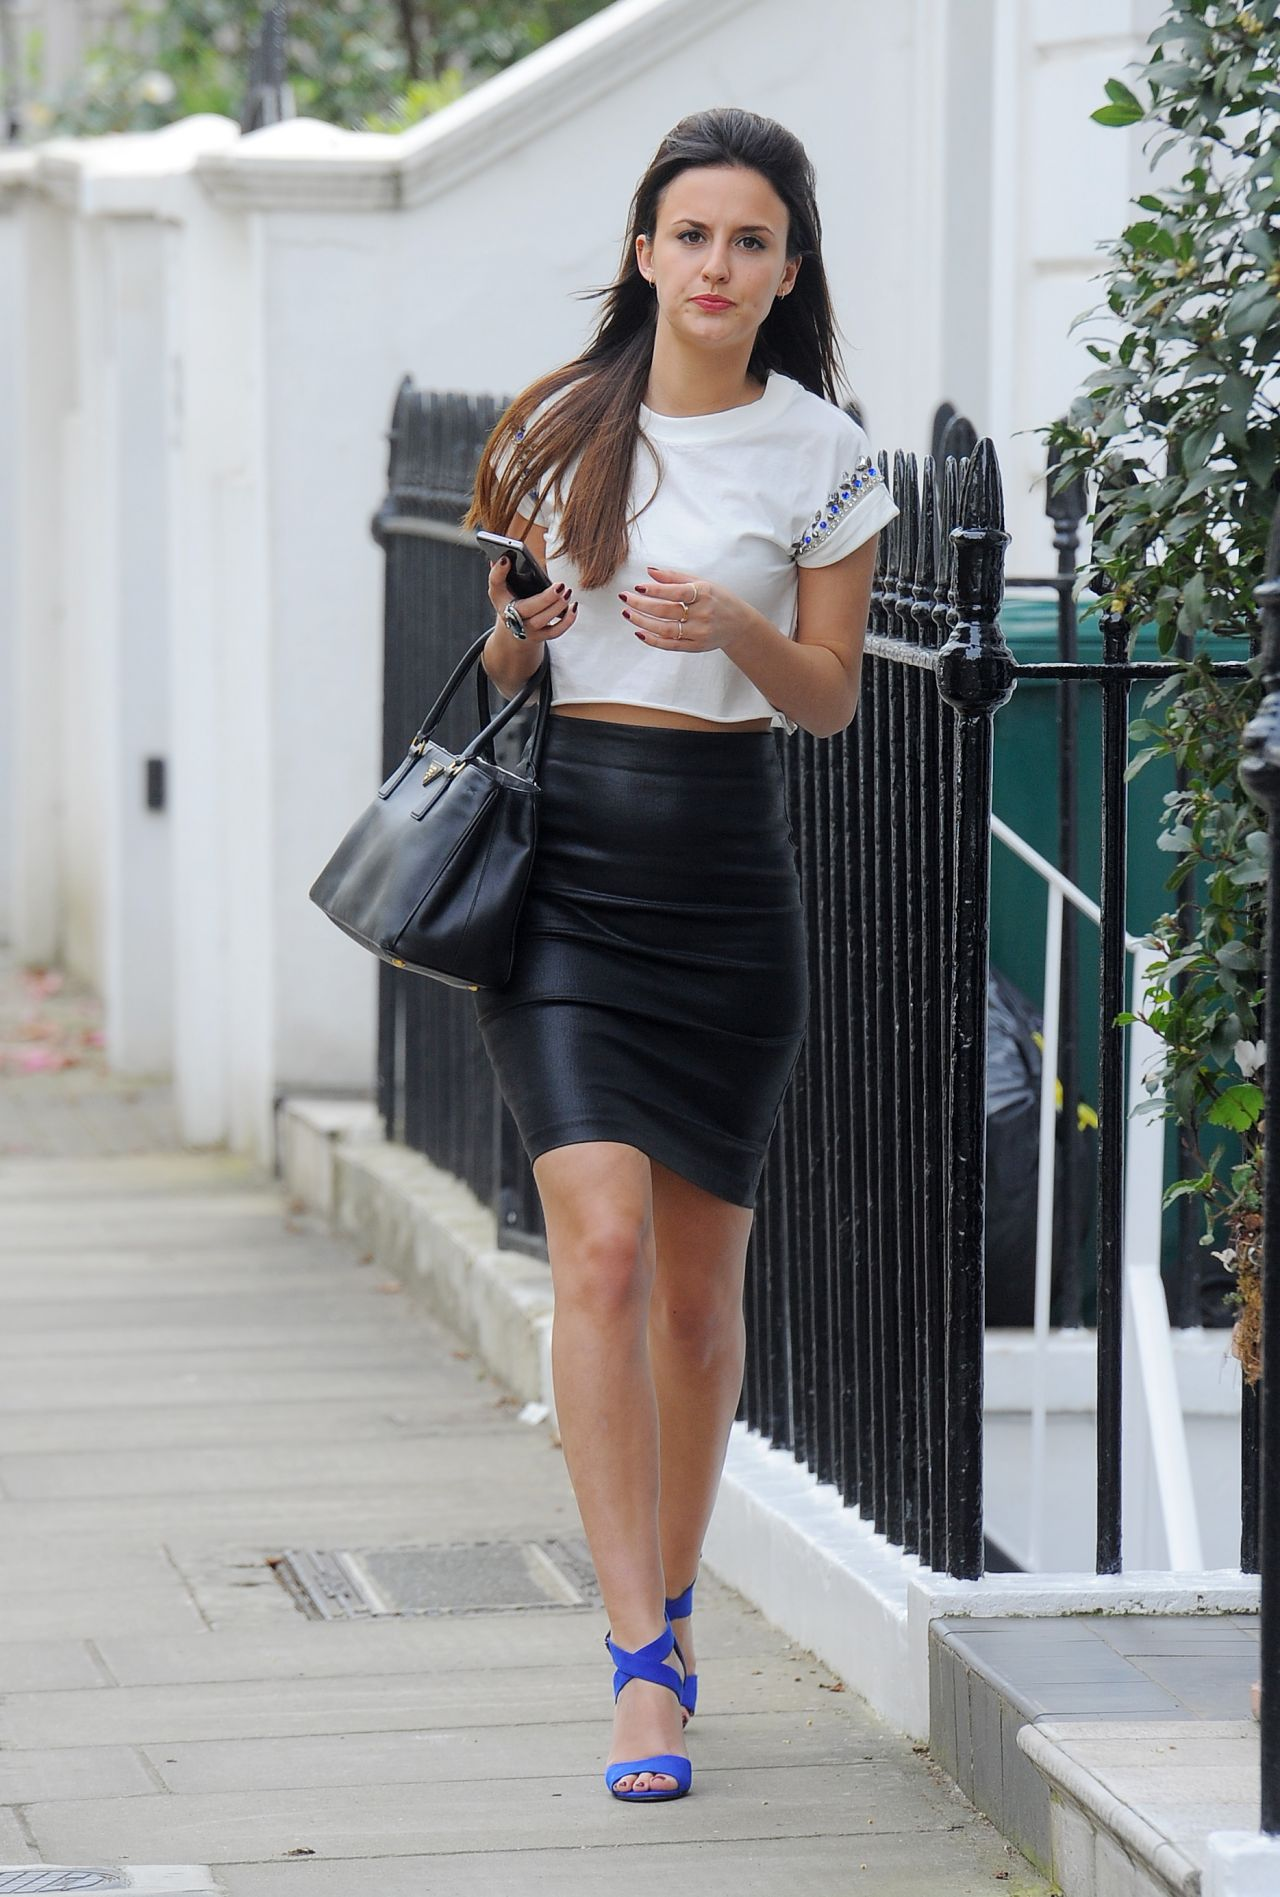 Lucy Watson In Tight Skirt Out In London April 2014